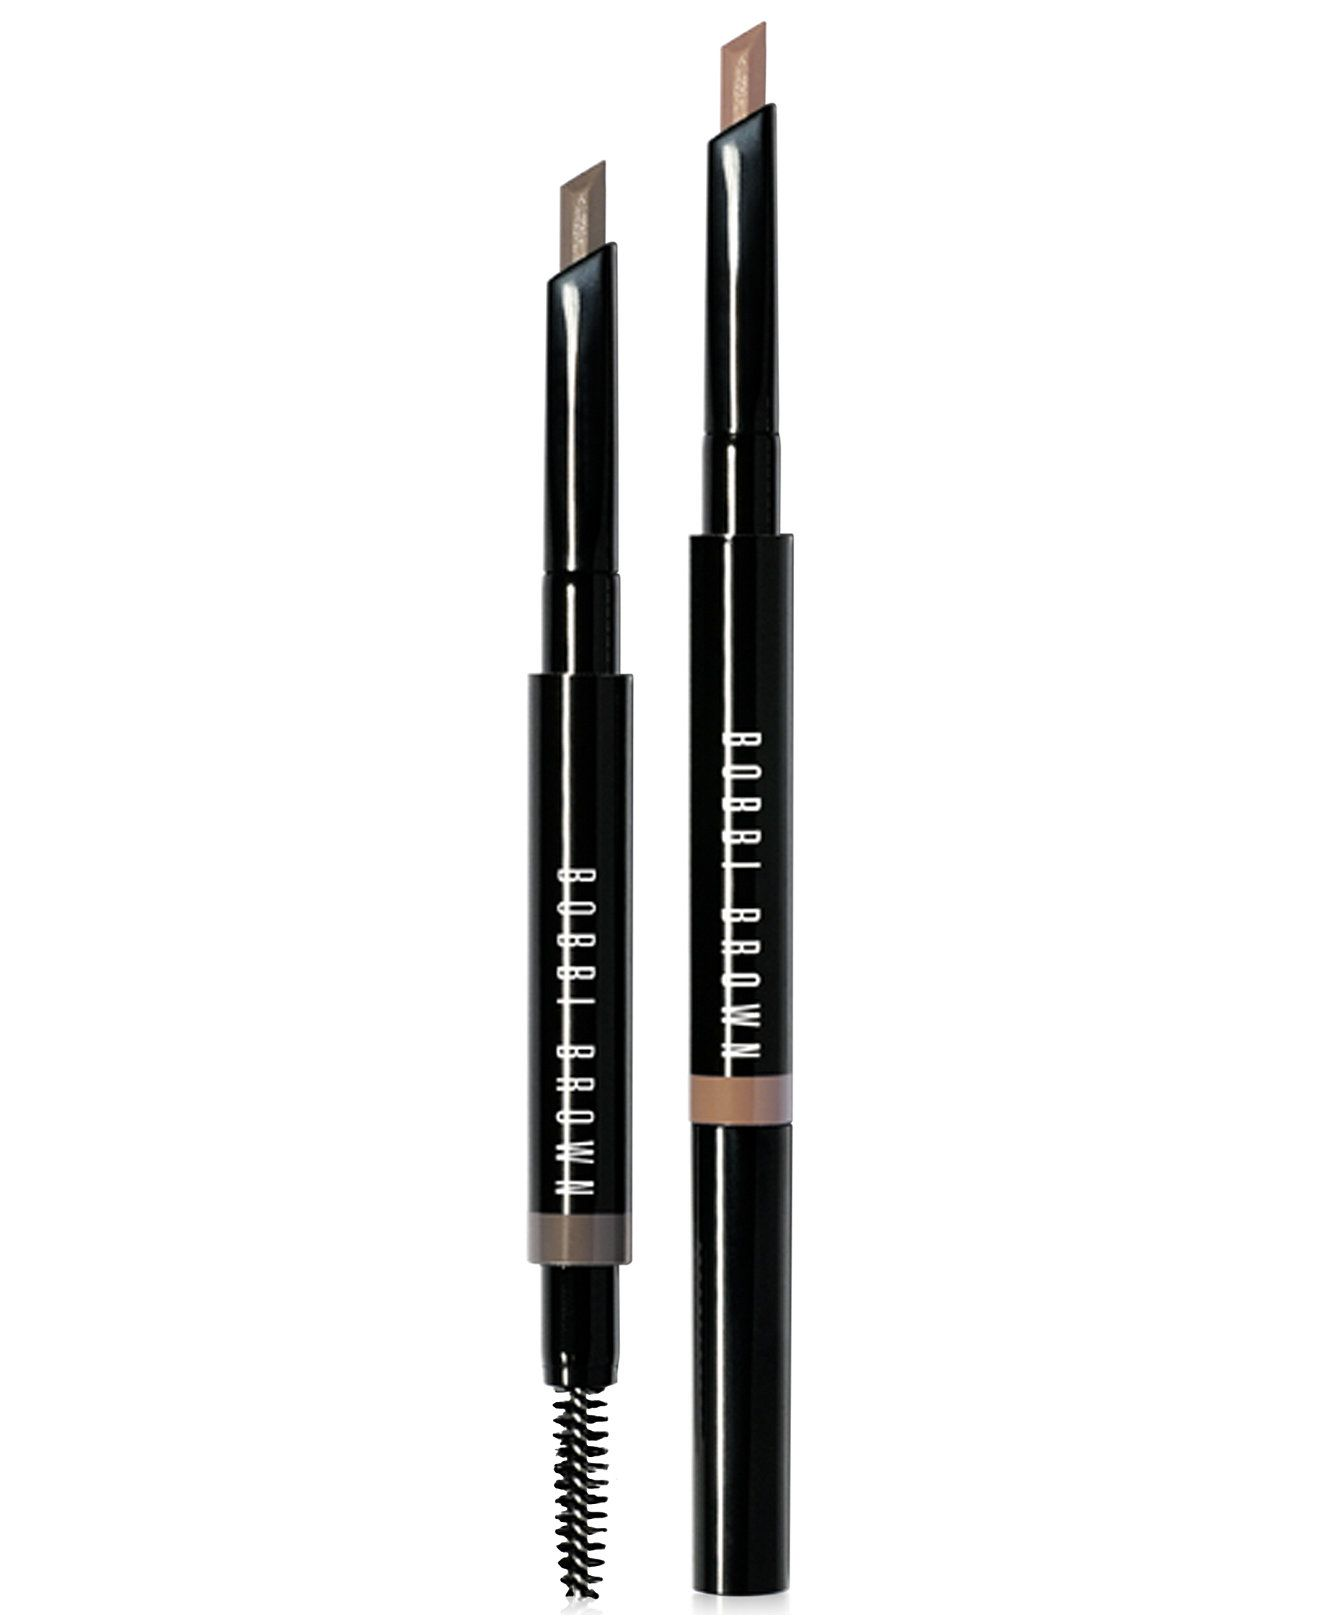 Bobbi Brown Perfectly Defined Long-Wear Brow Pencil | Eyebrows ...